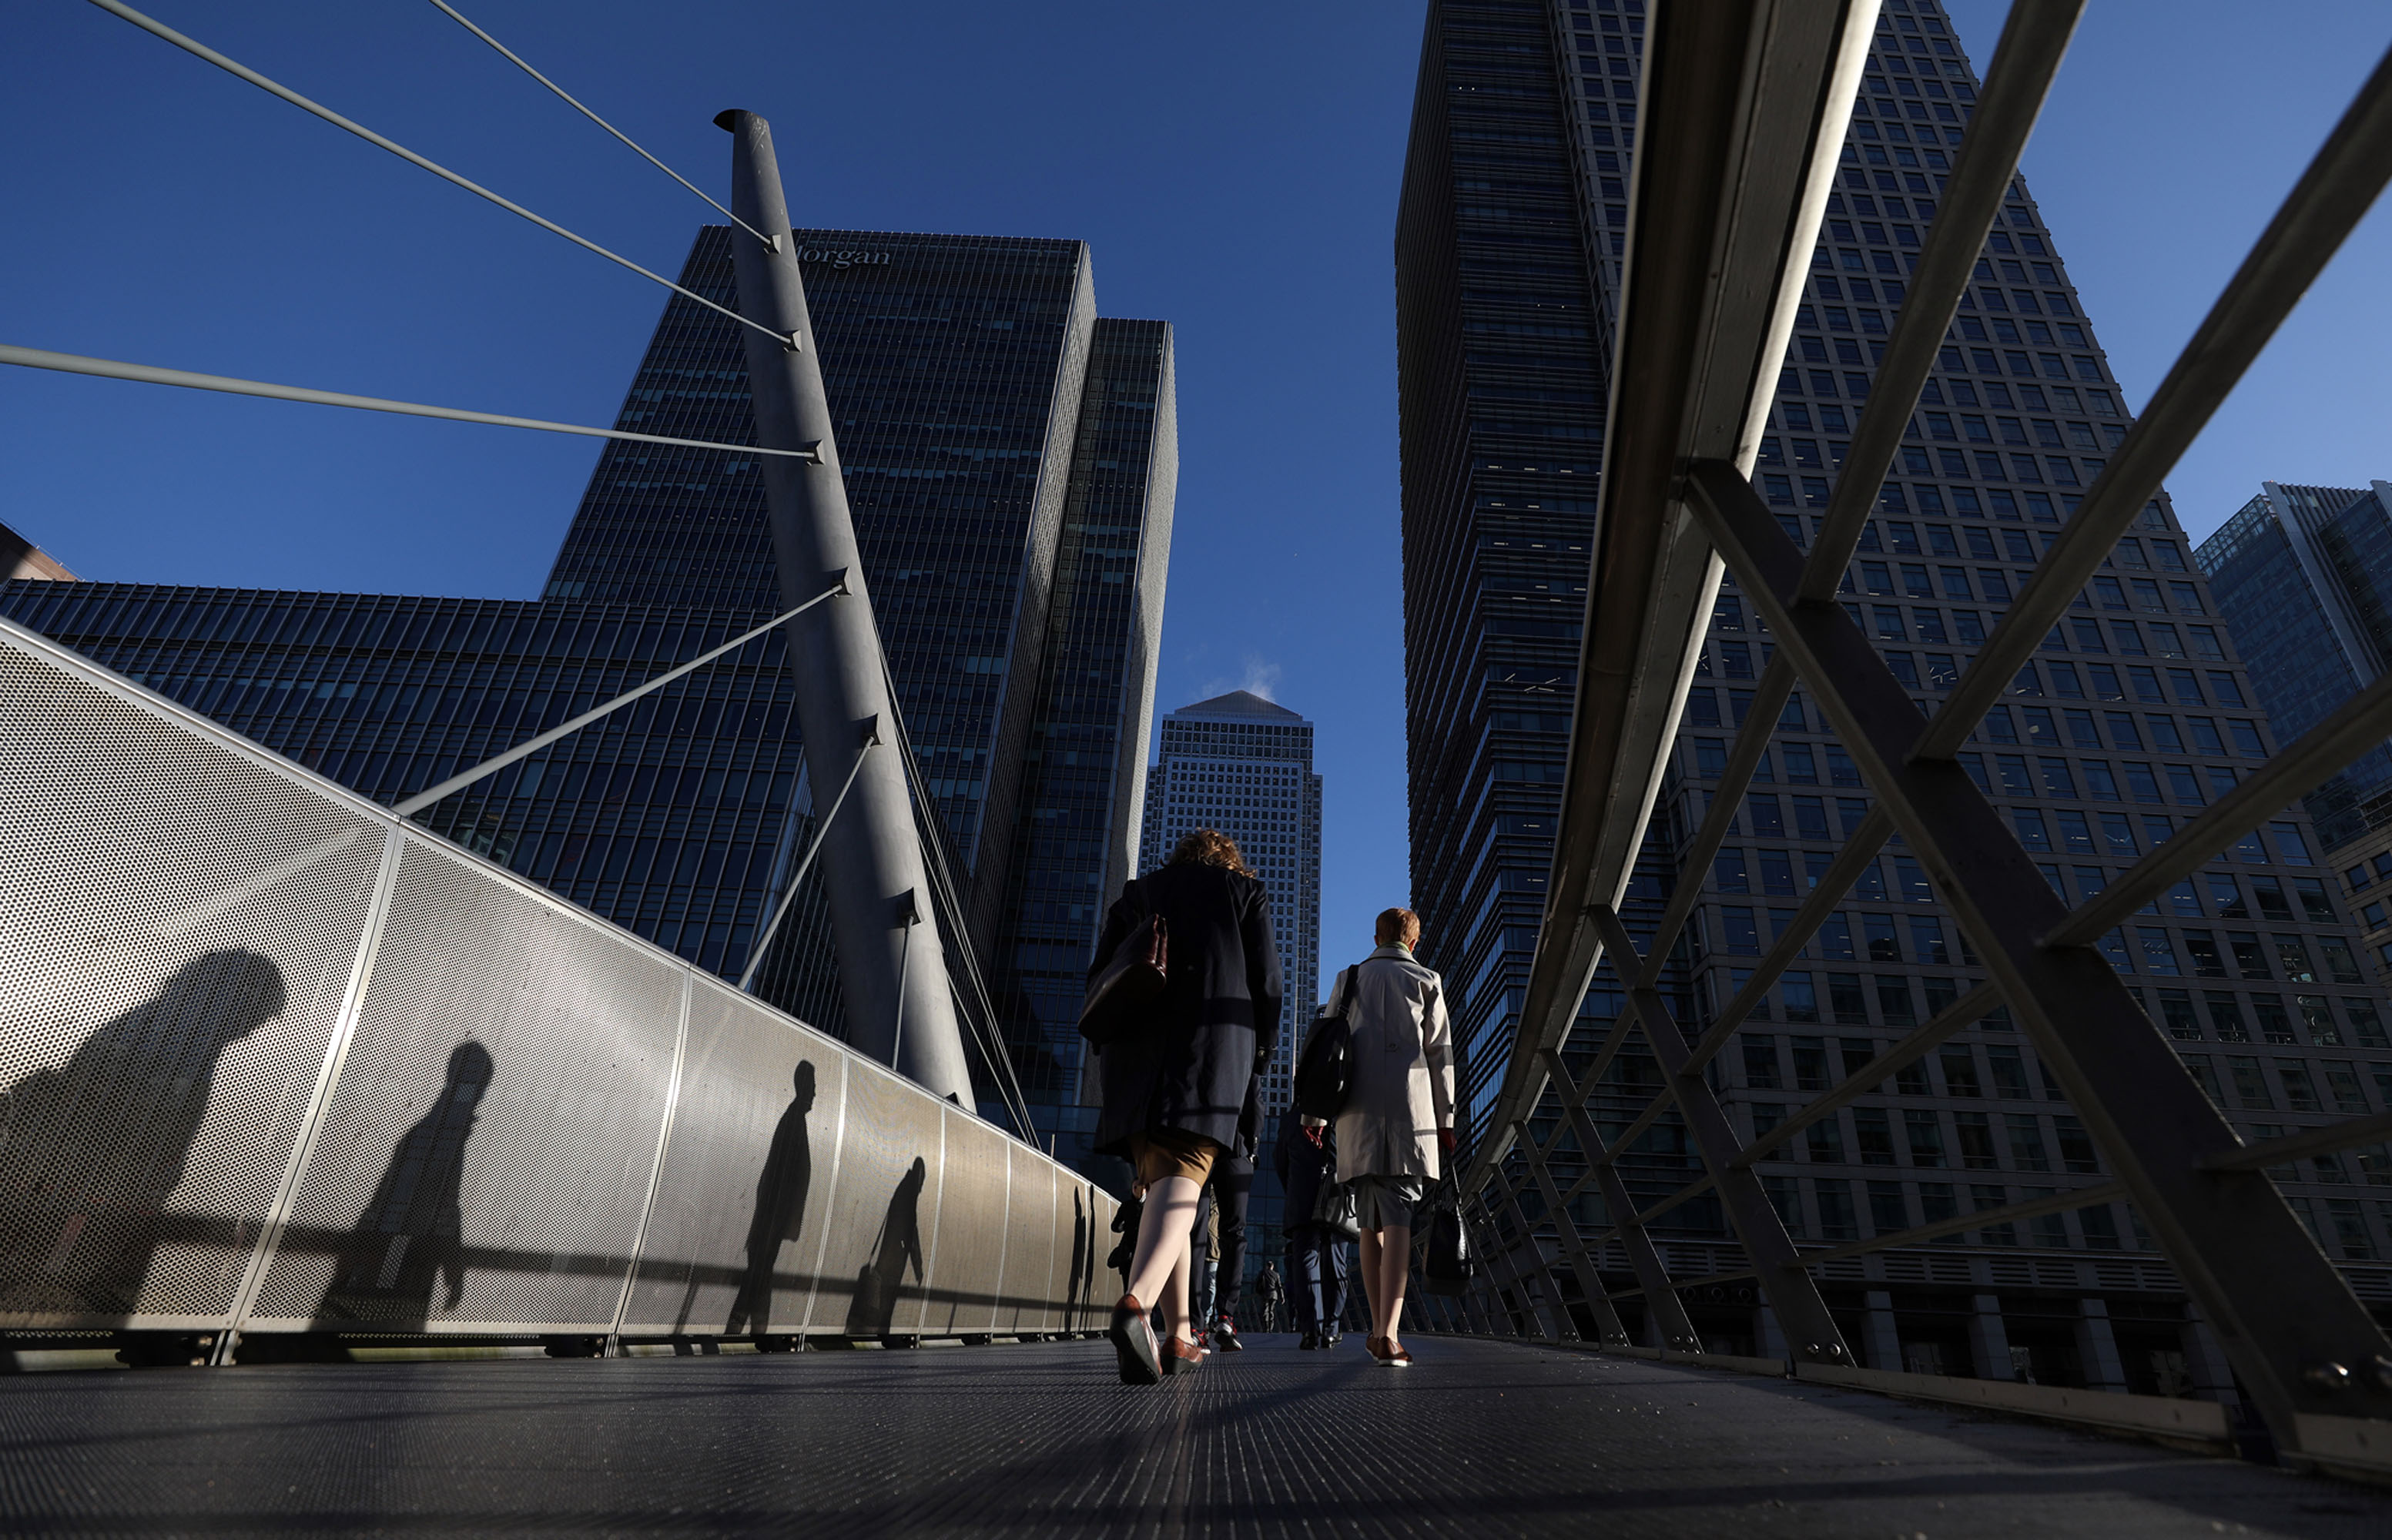 bloomberg.com - Harry Wilson - JPMorgan Said to Push 300 Employees to Leave London After Brexit